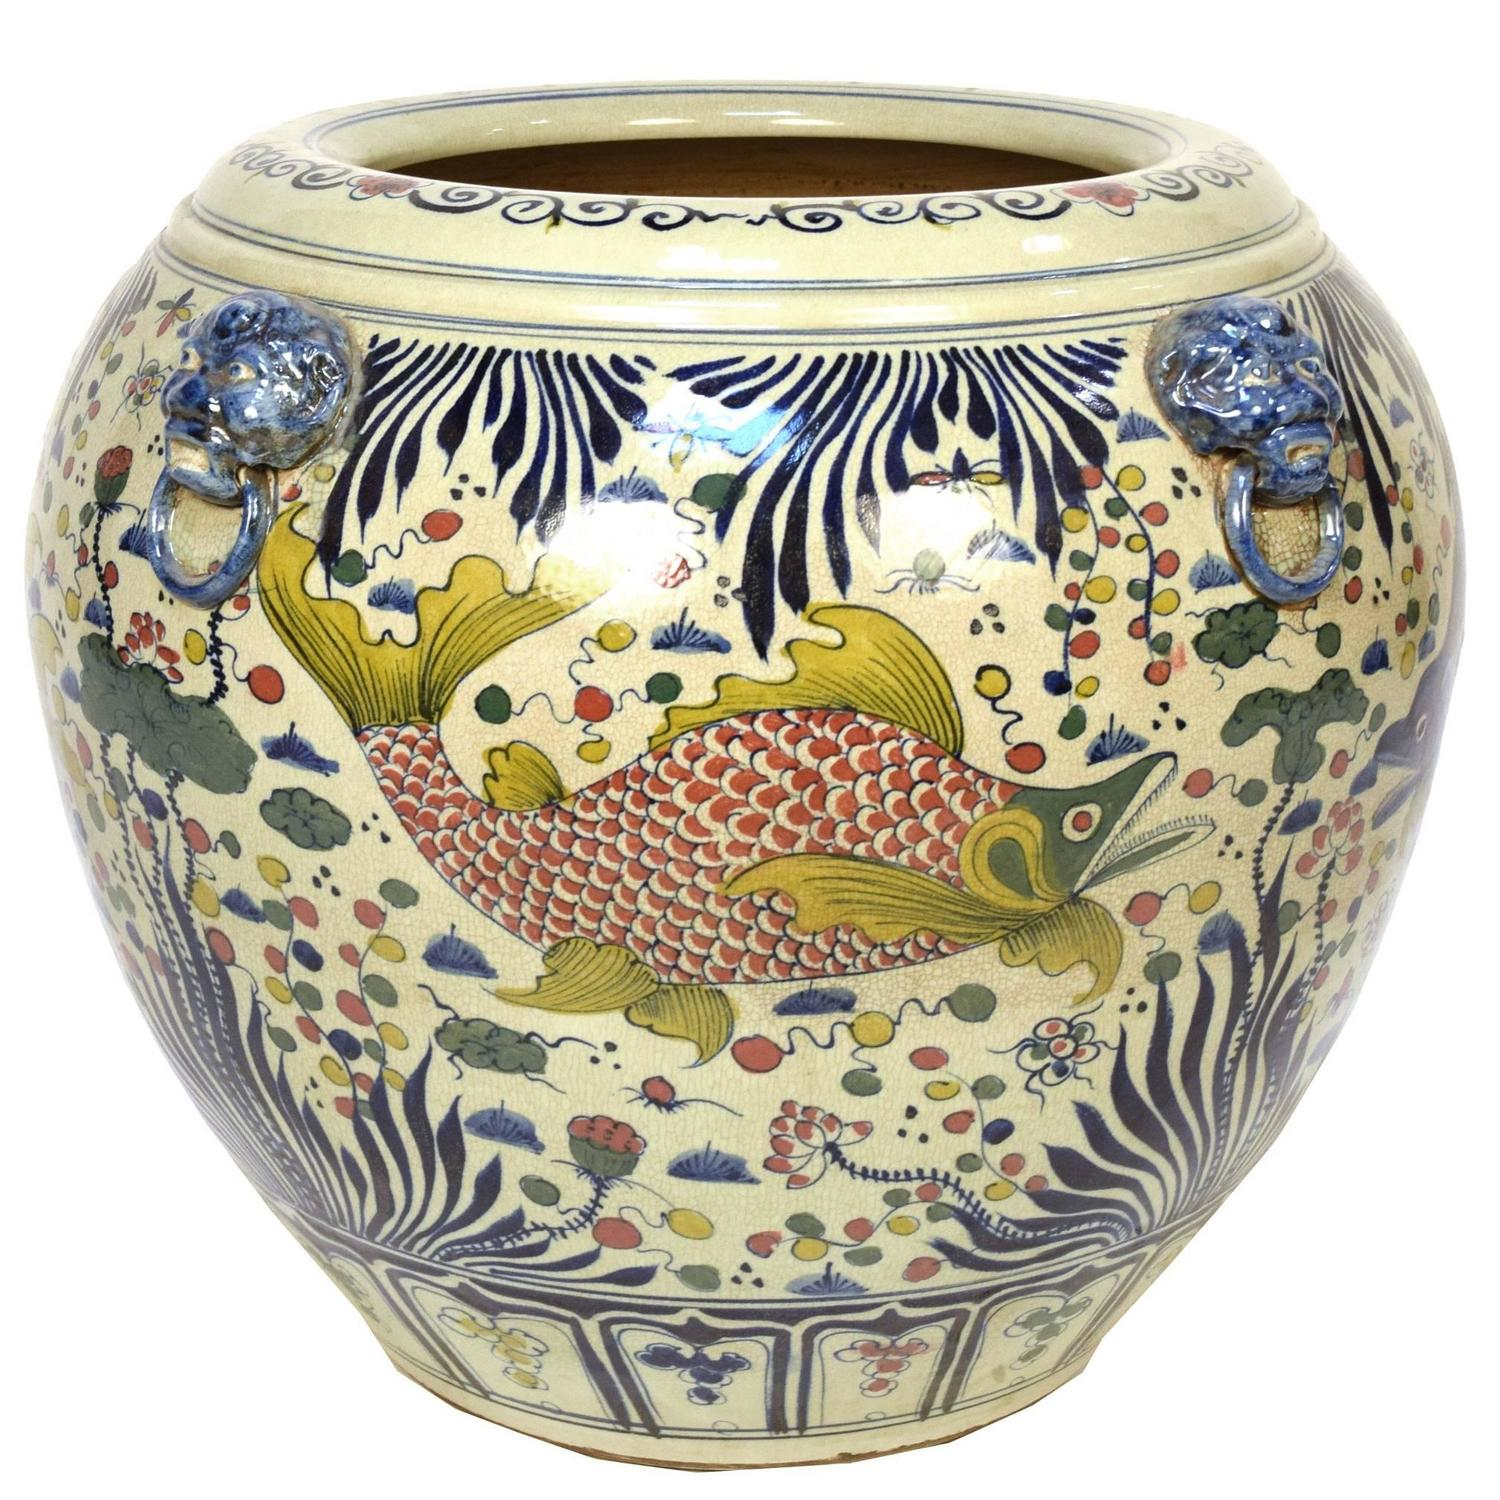 Chinese wucai fish bowl for sale at 1stdibs for Chinese fish bowl